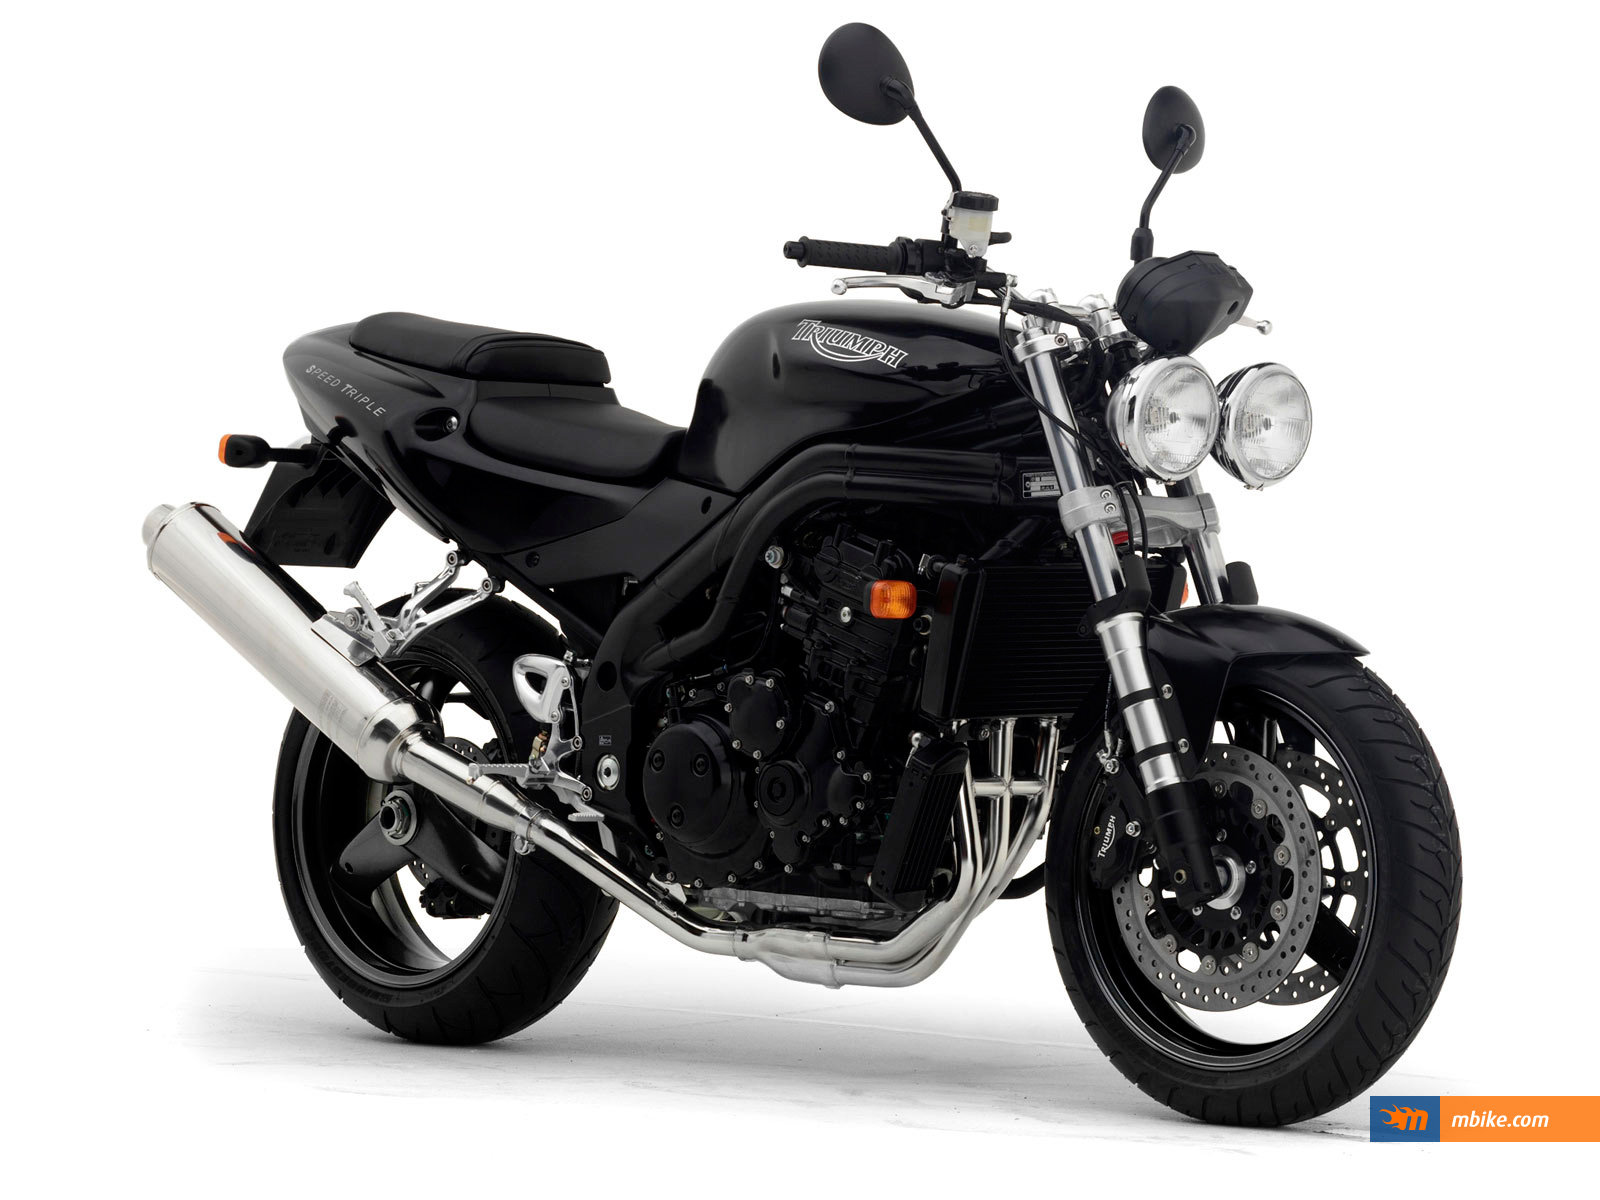 2004 triumph speed triple 955 wallpaper - mbike